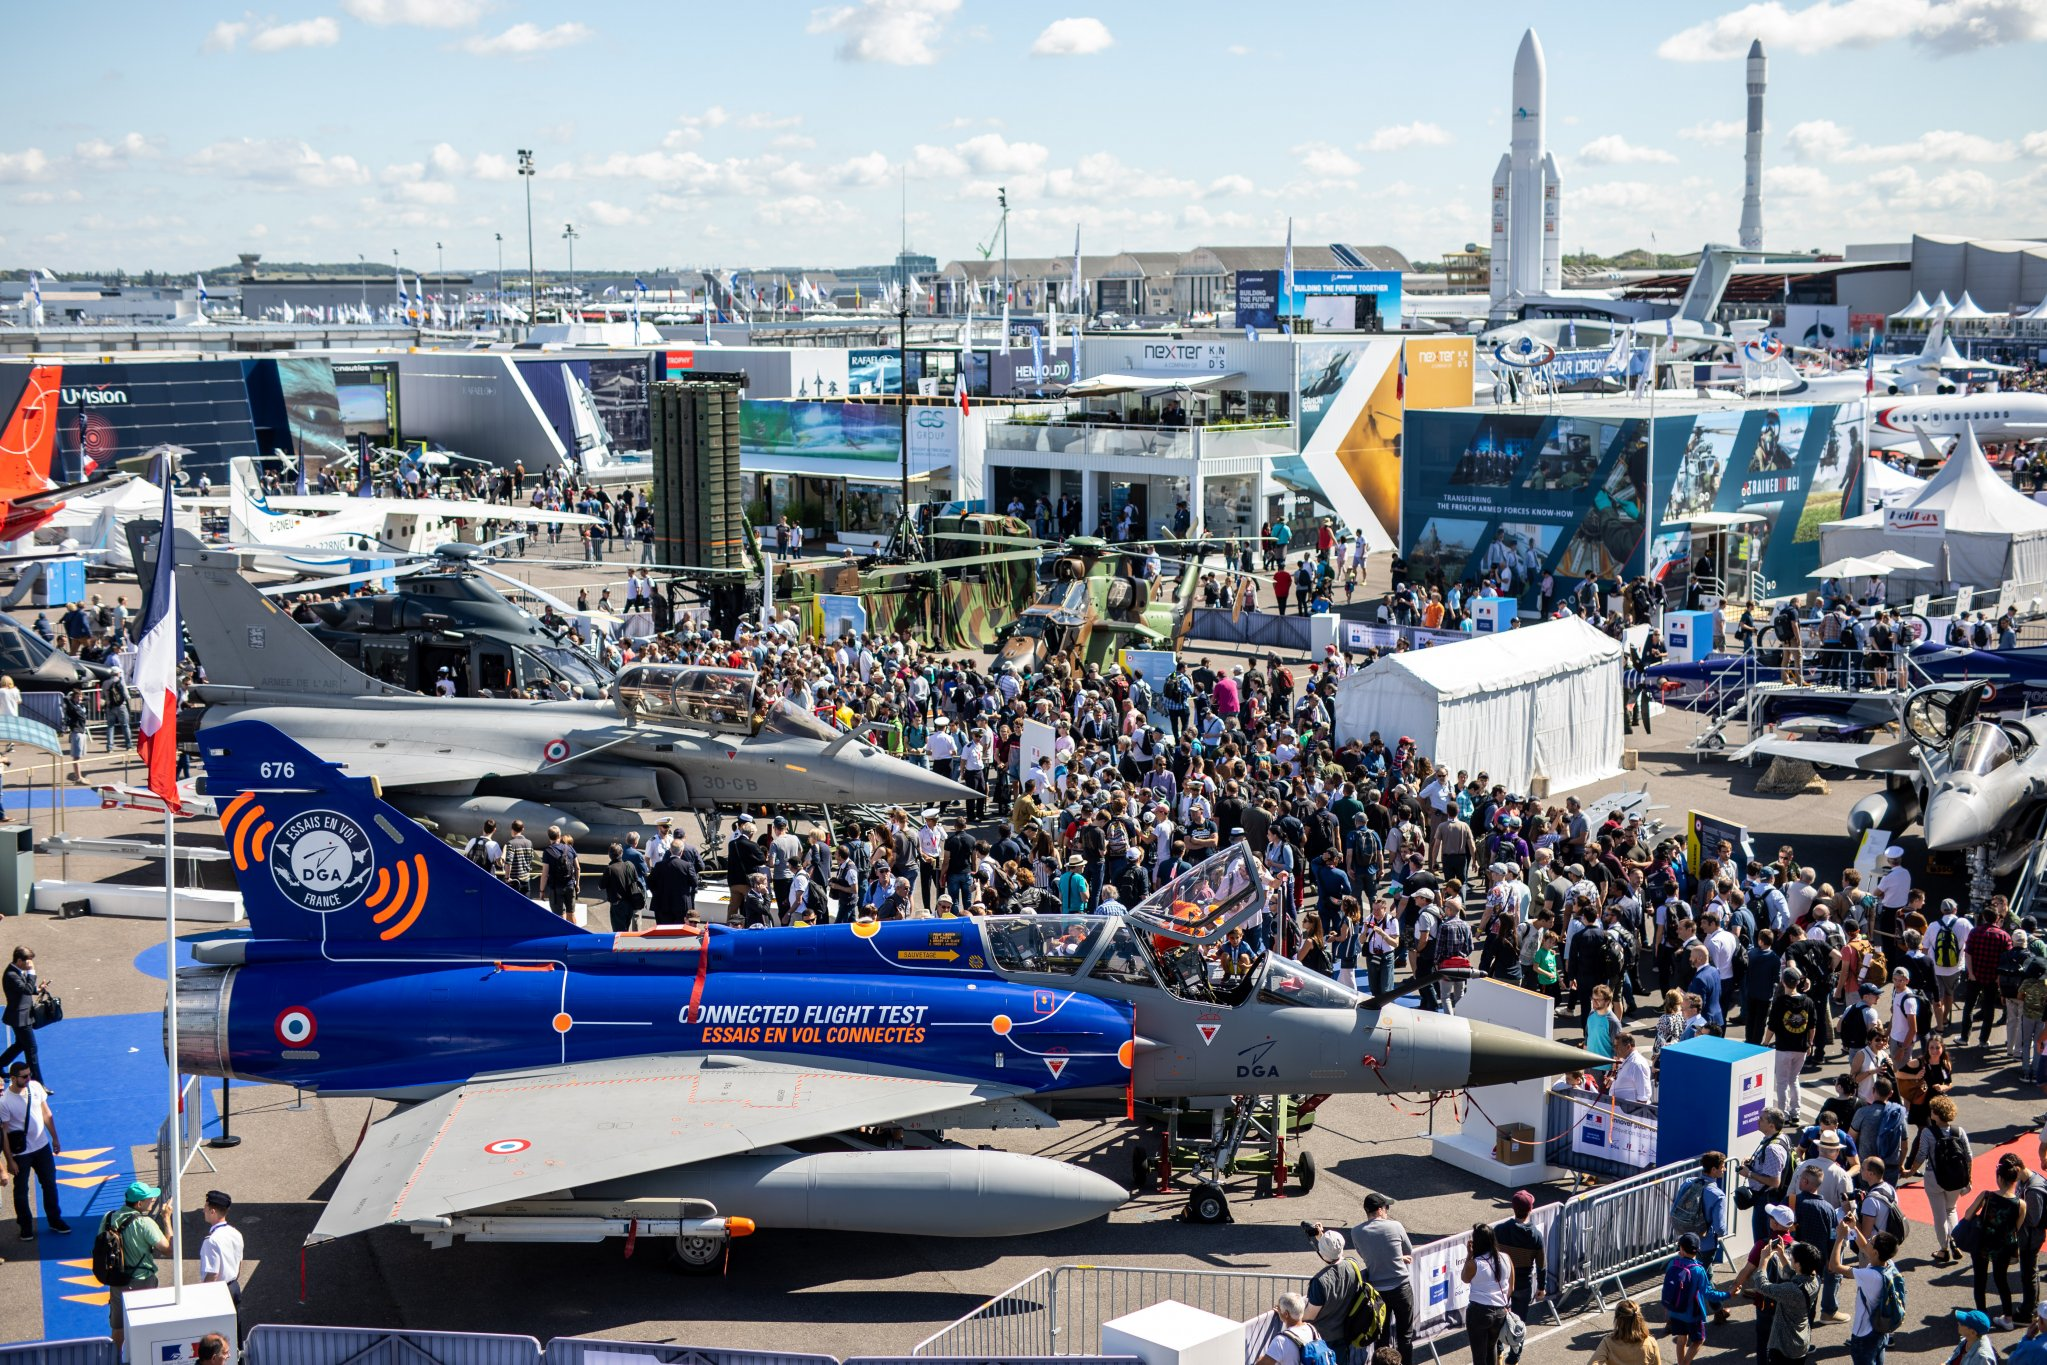 International Paris Air Show - Le Bourget